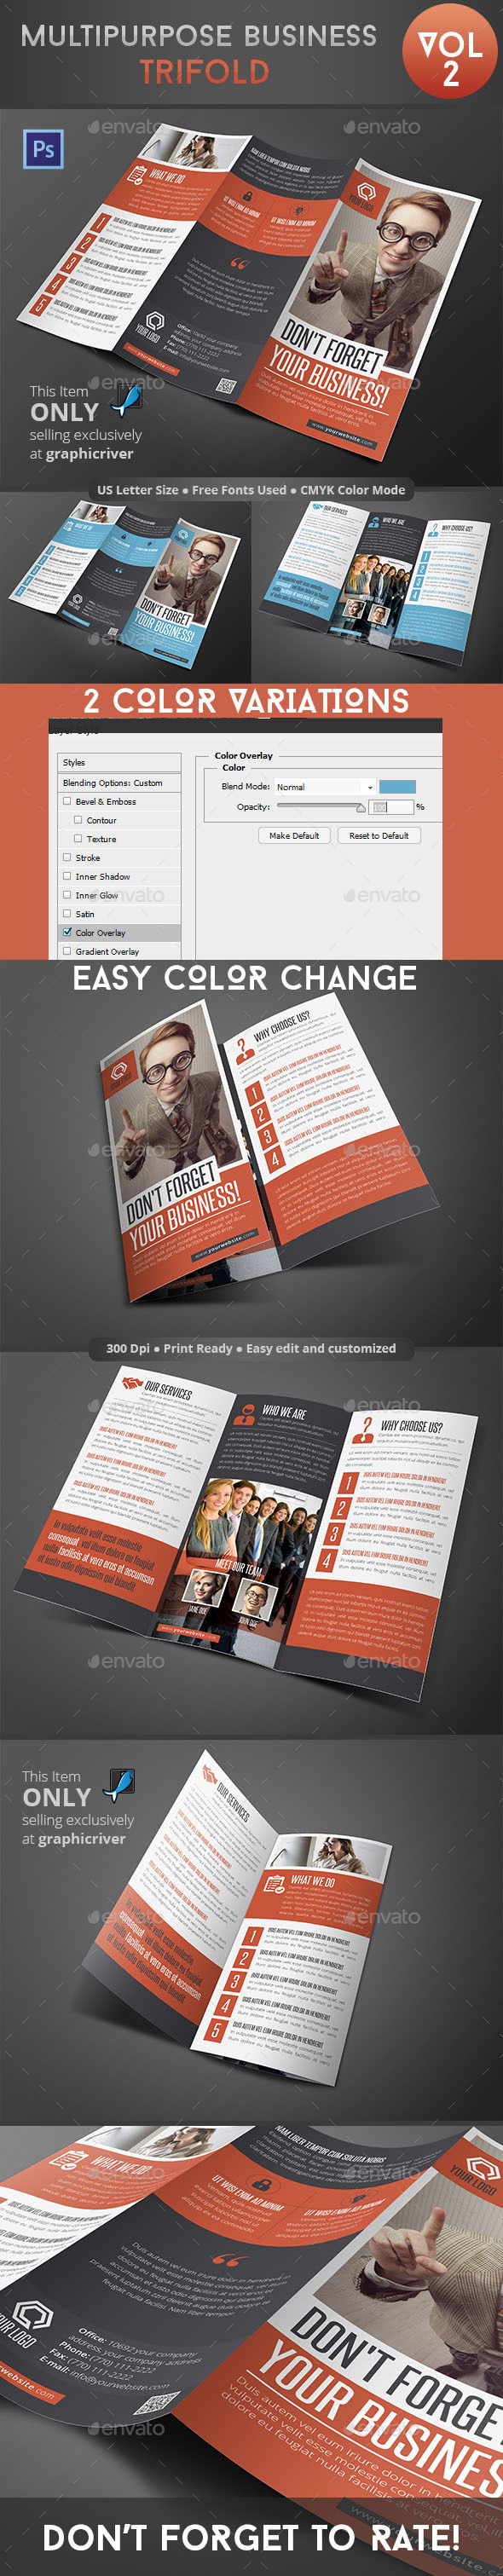 Multipurpose Business Trifold Vol 2 - Informational Brochures